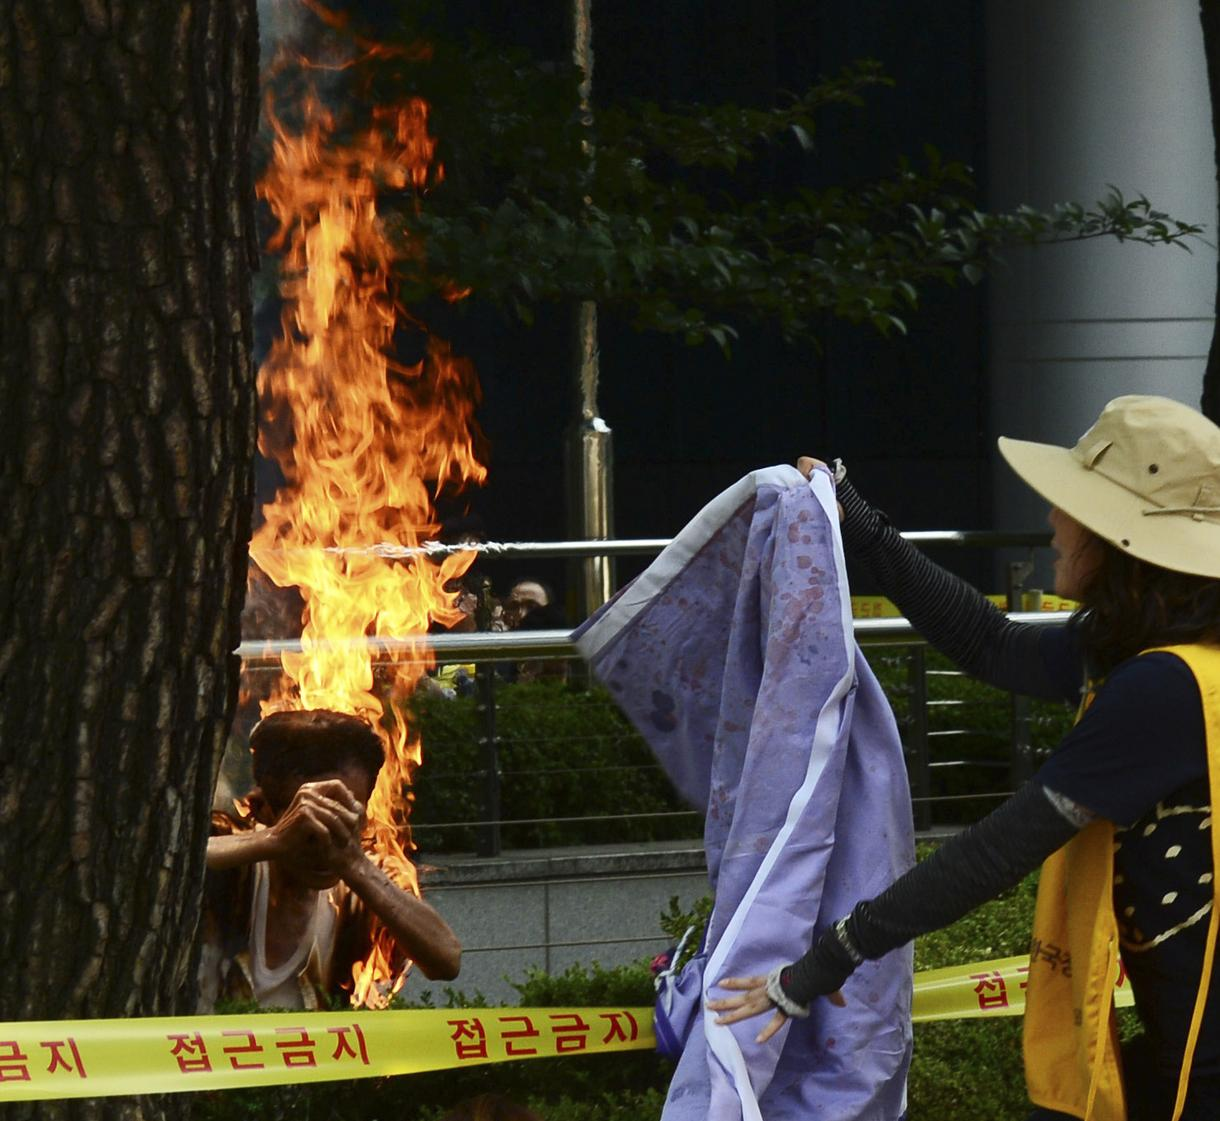 Man Sets Woman On Fire : Man sets himself on fire at comfort women protest in